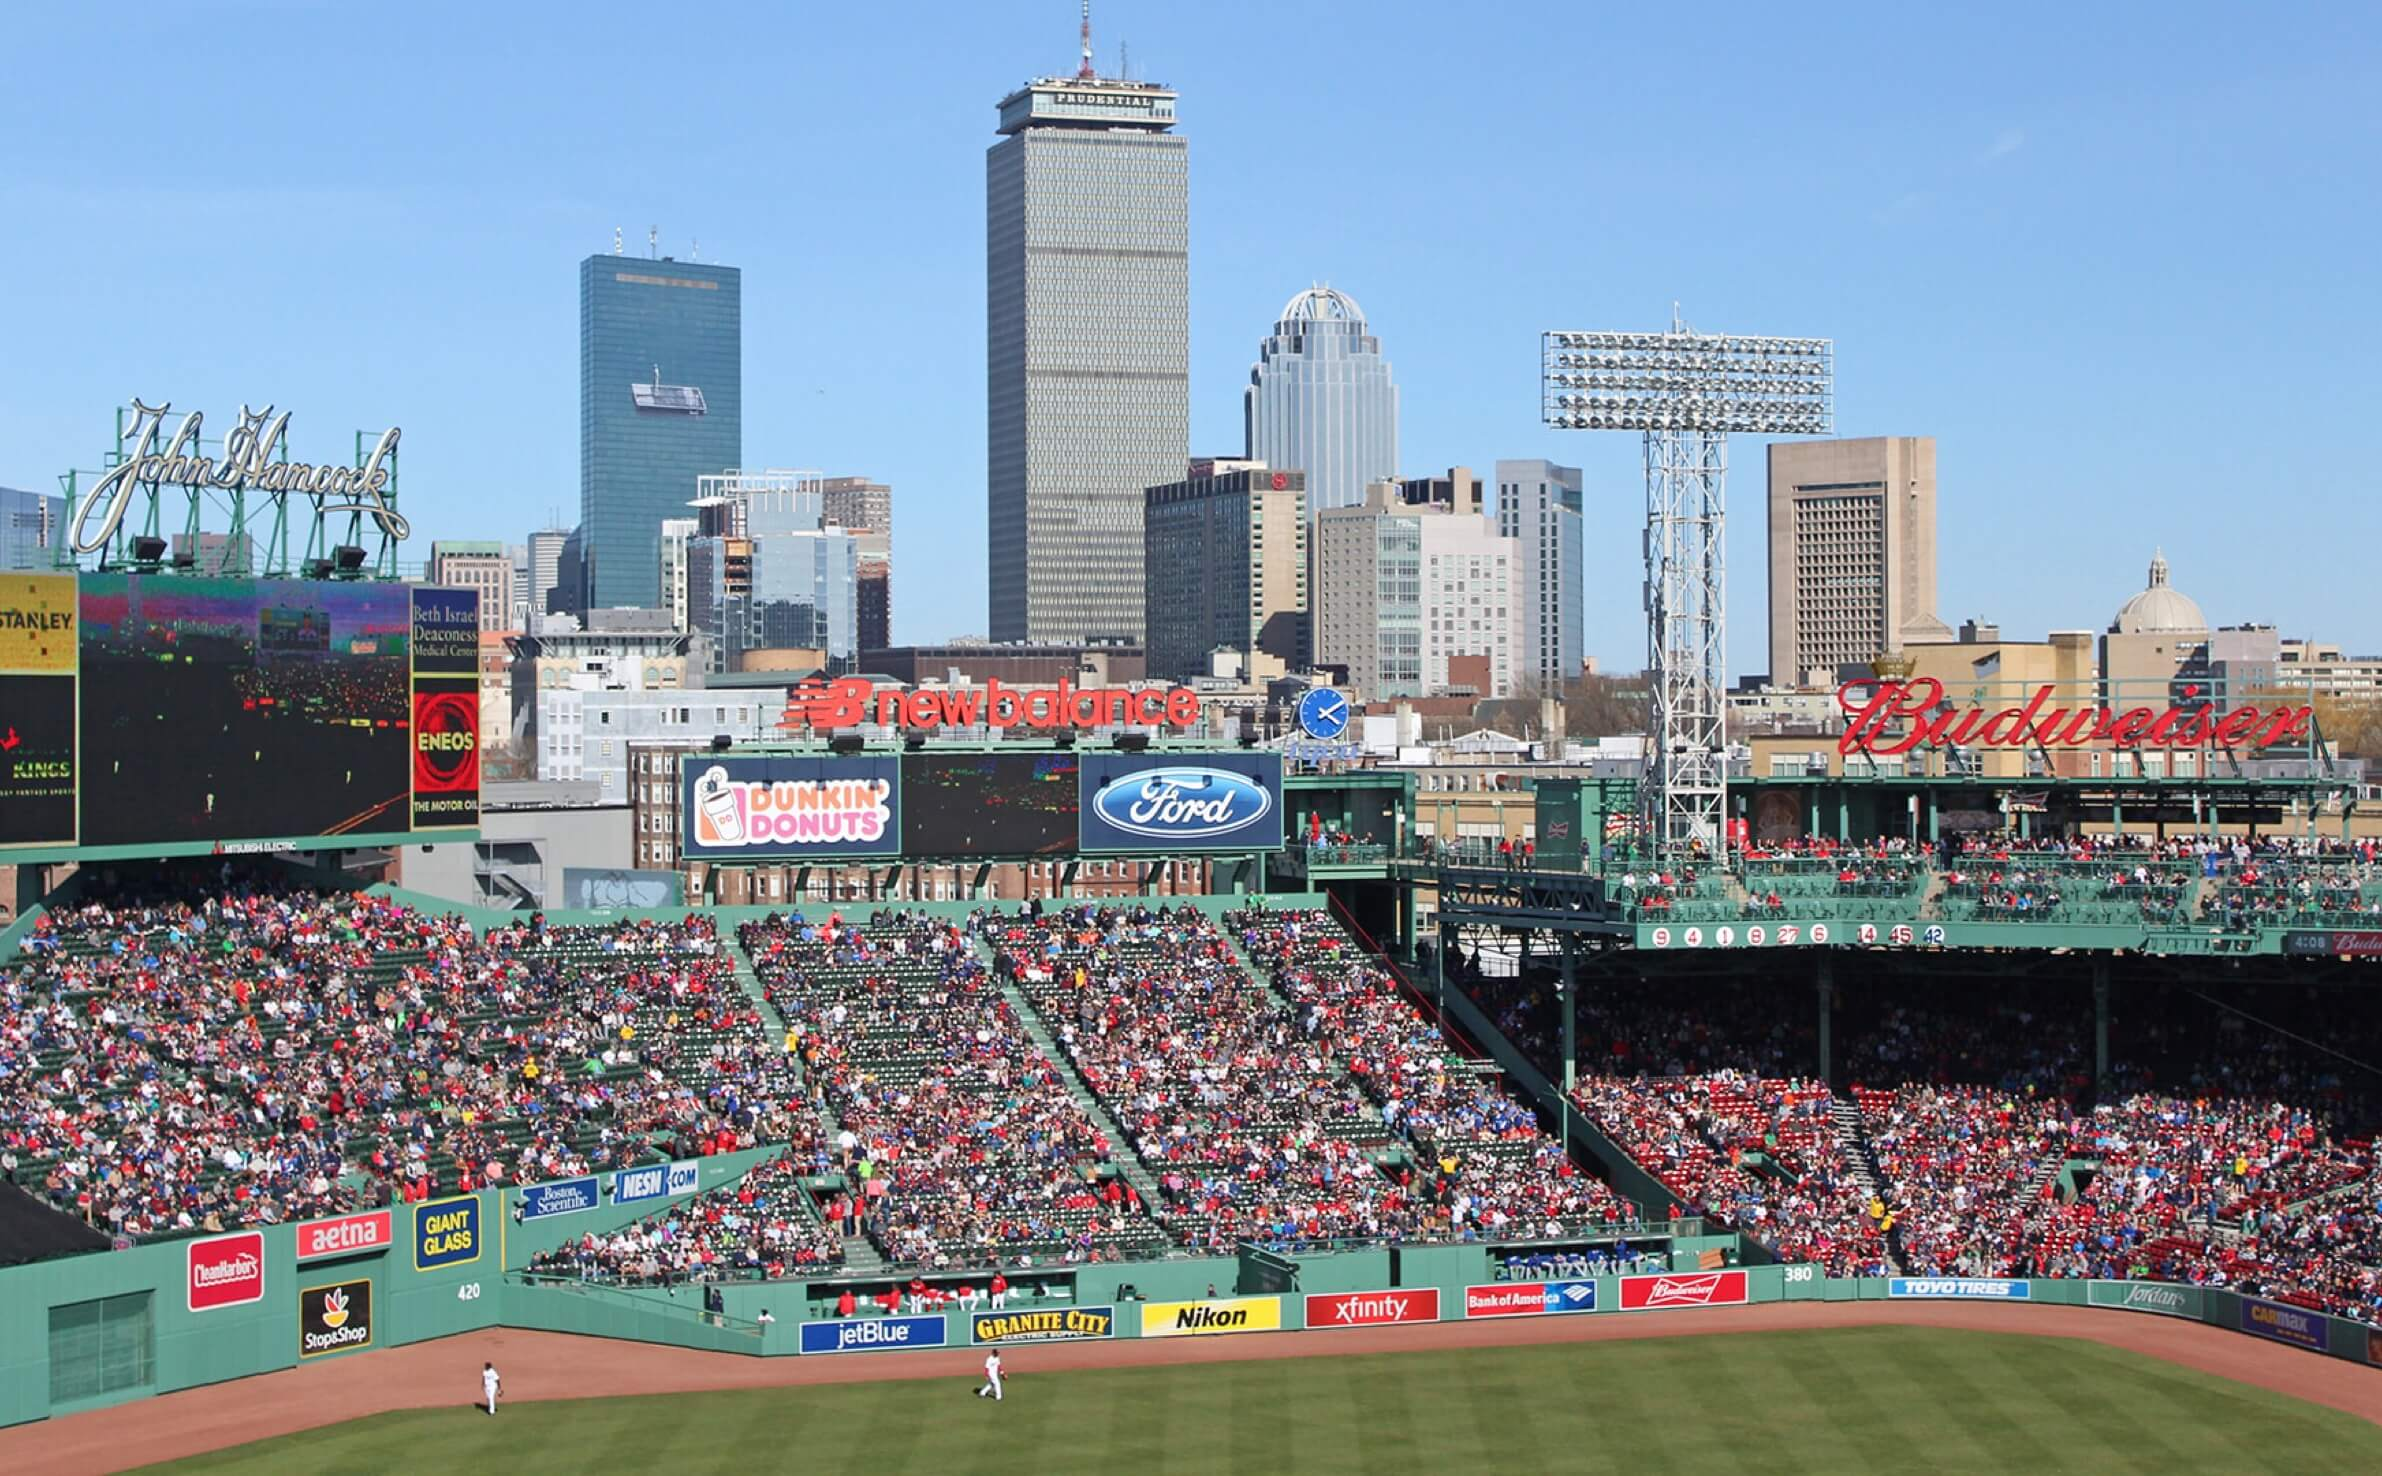 Fenway Stadium filled with fans